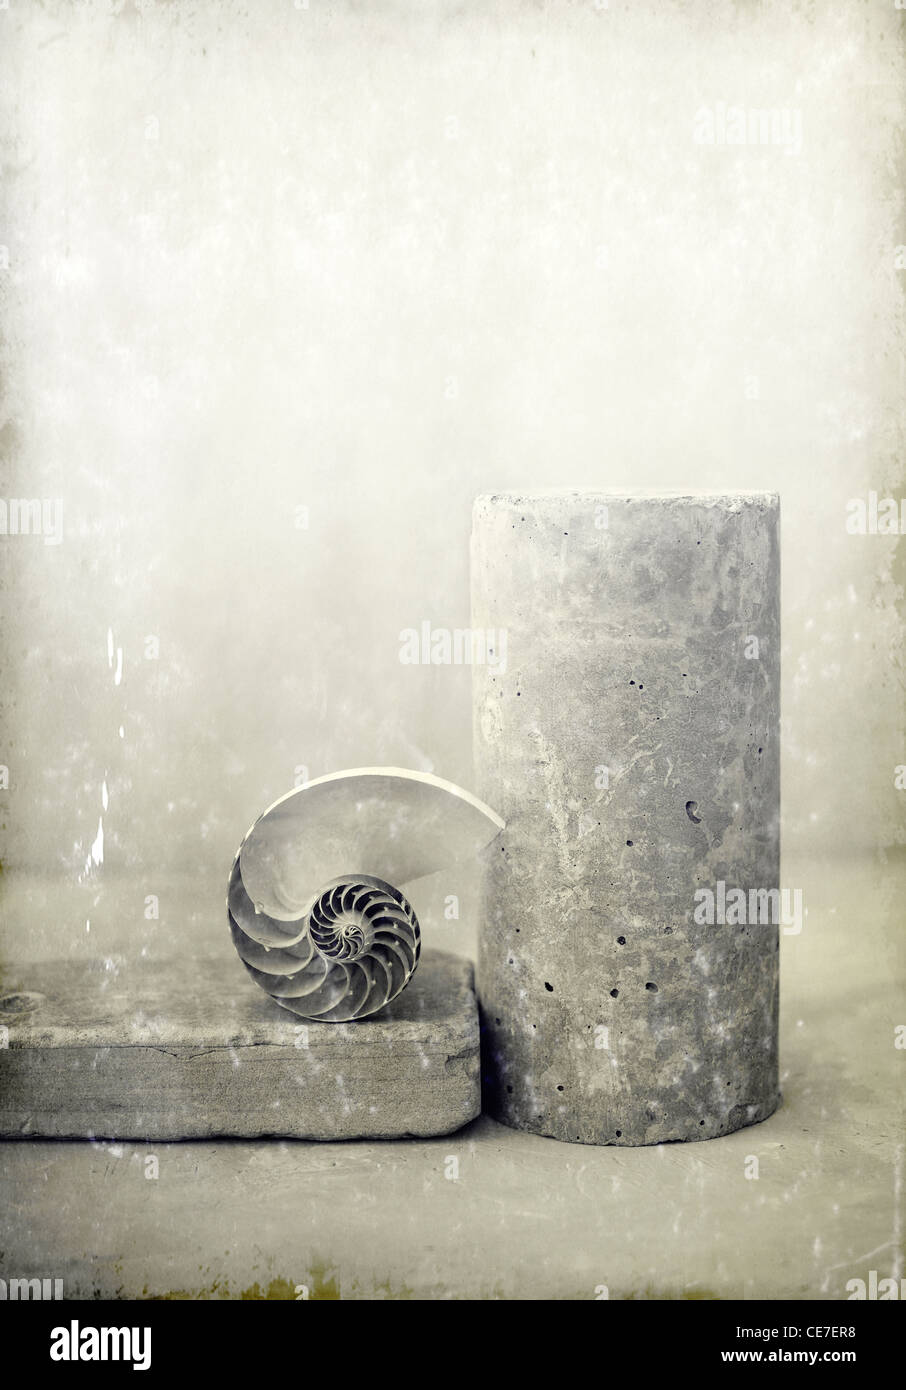 Nautilus shell with a concrete pillar and brick. - Stock Image